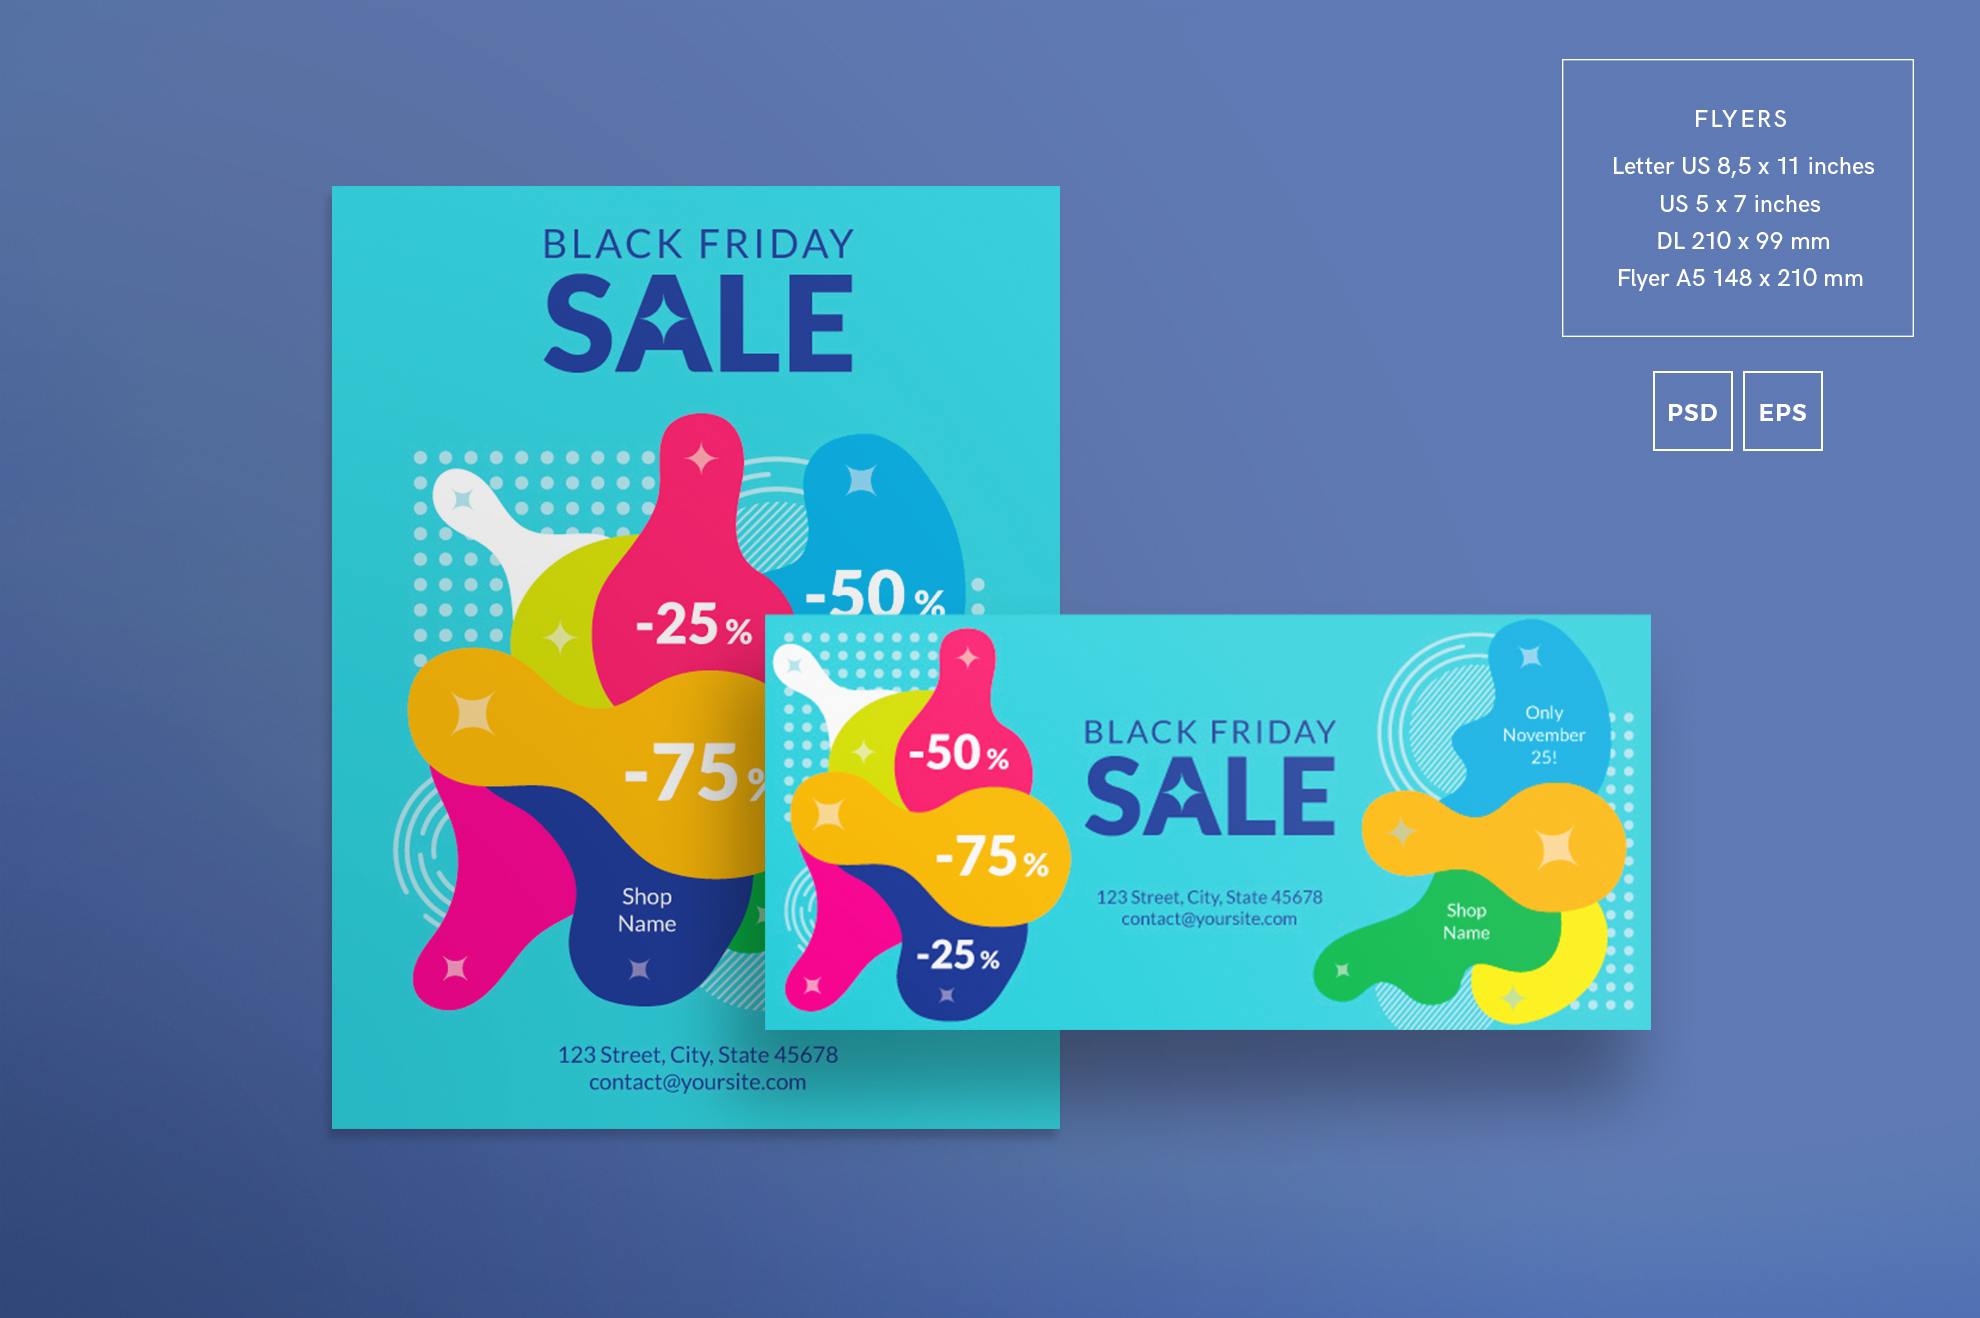 Black Friday Sale Design Templates Bundle example image 2